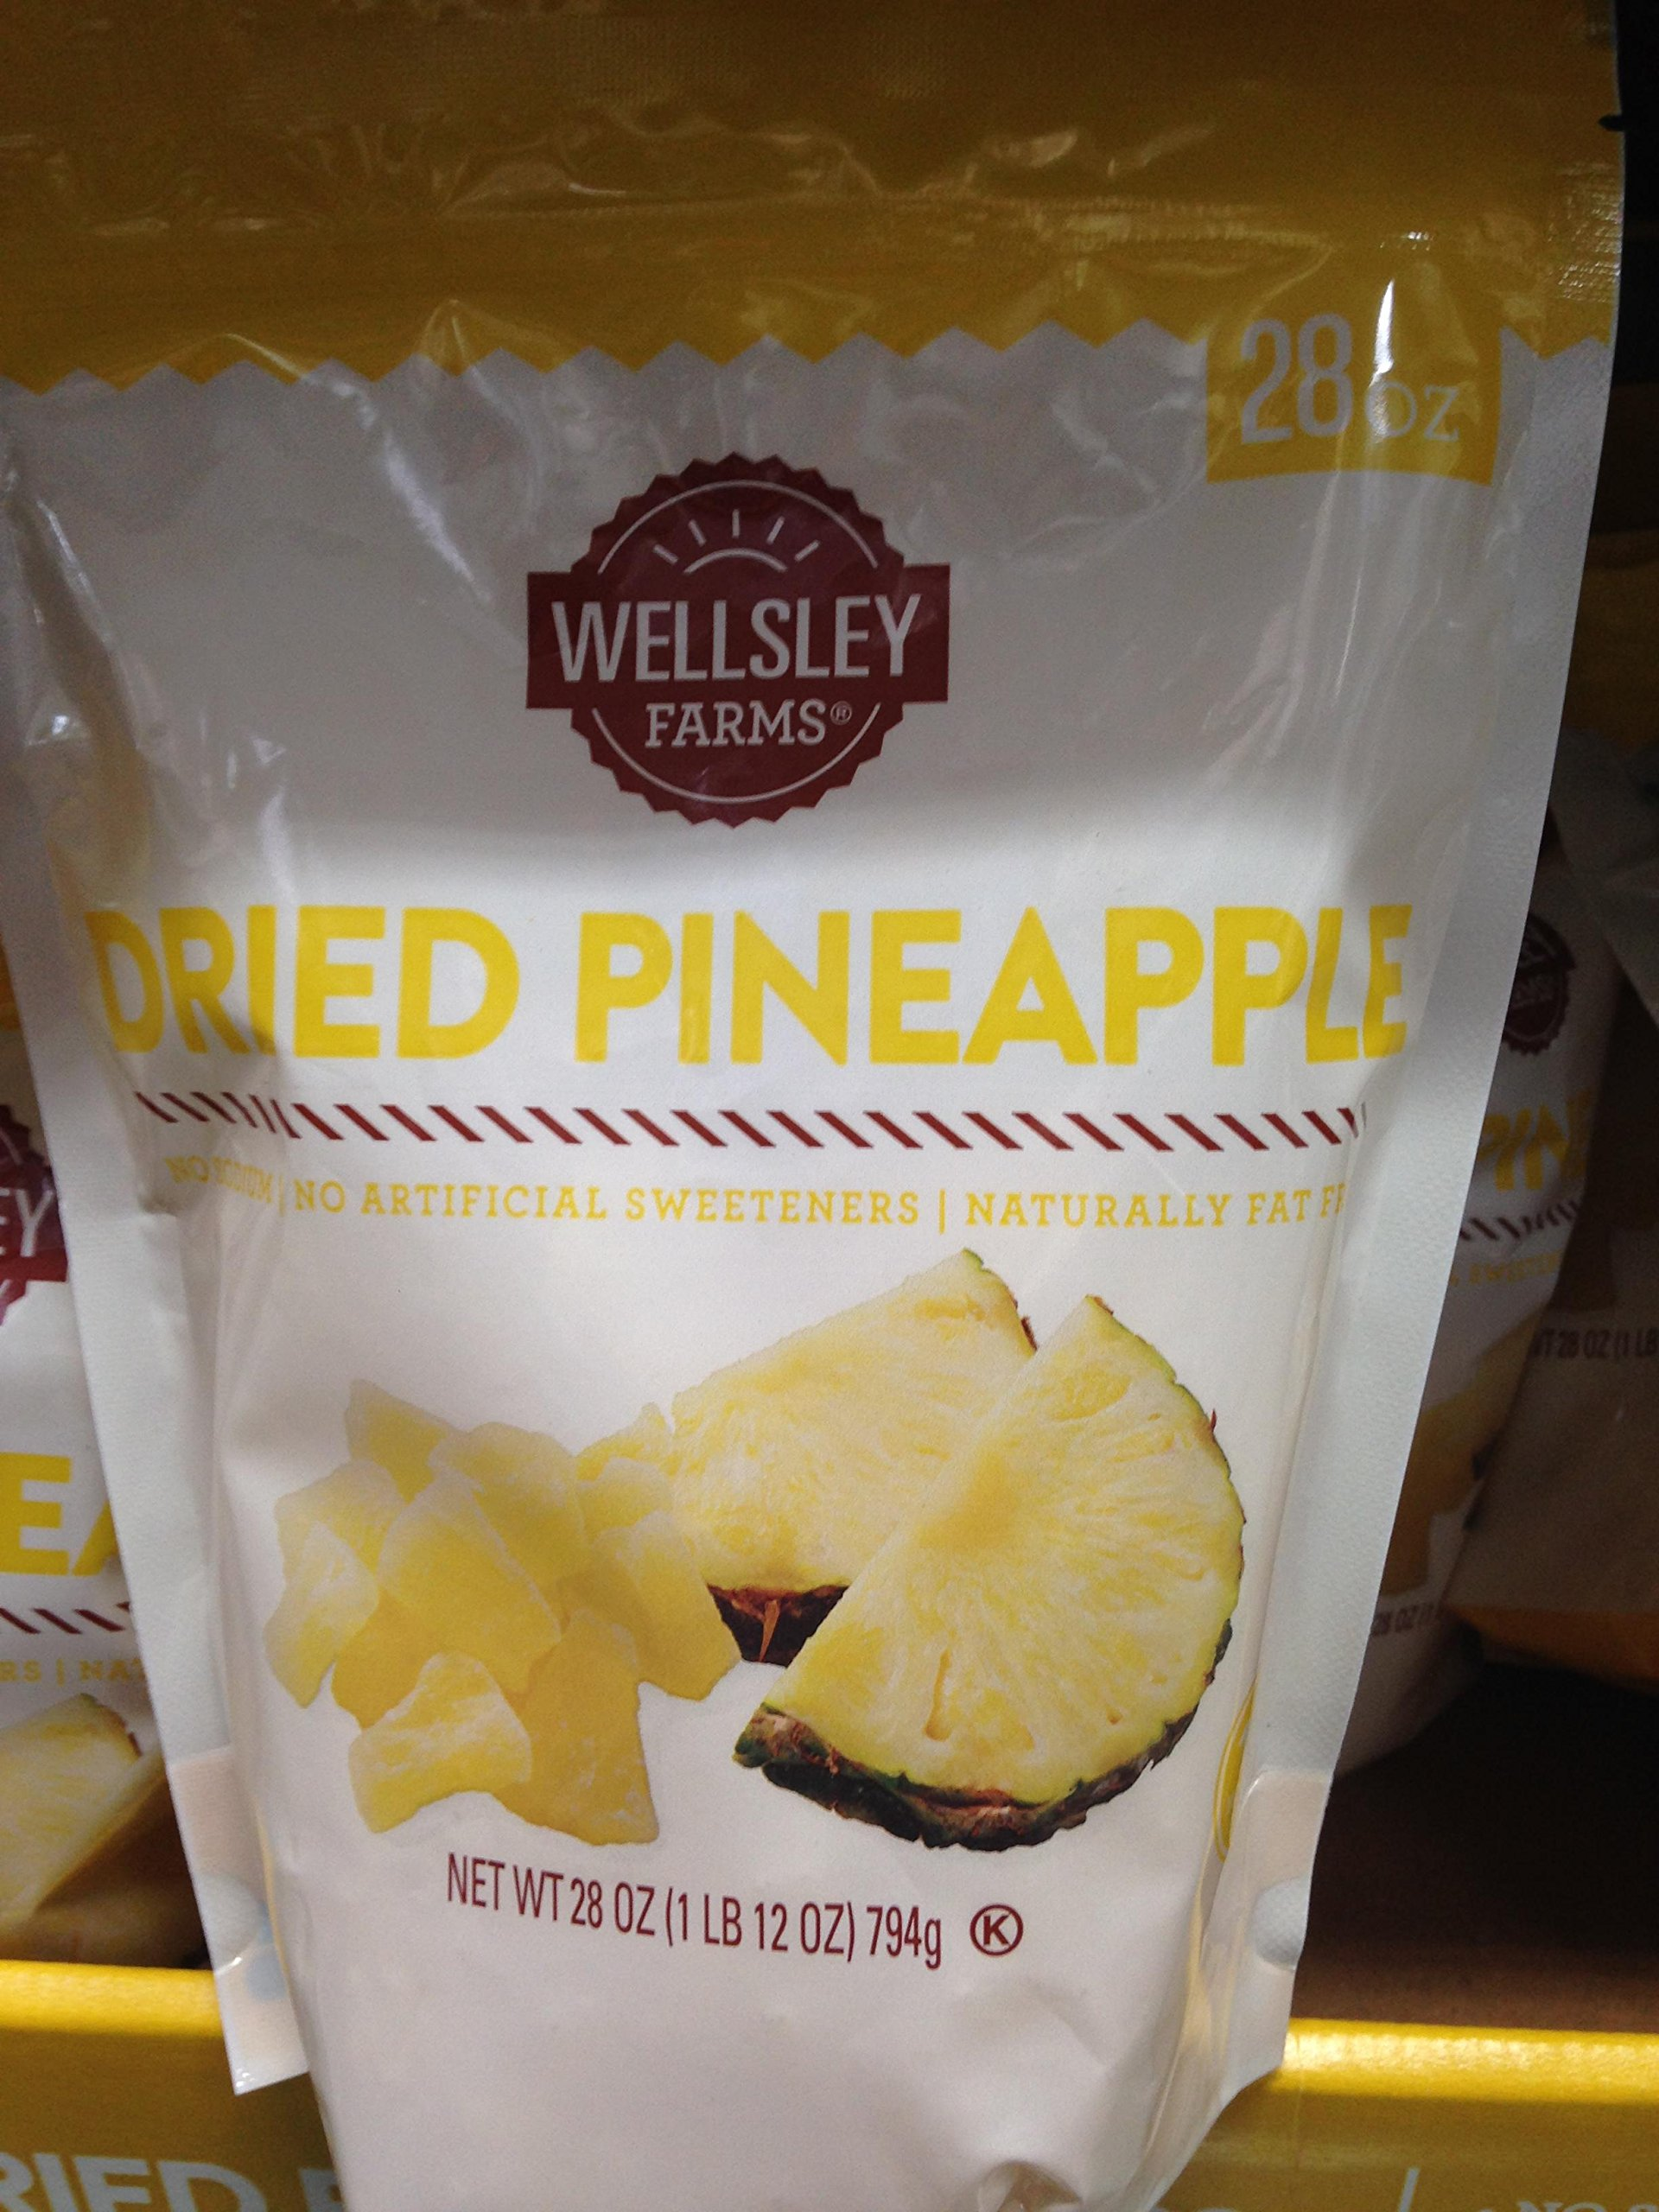 Wellsley Farms Dried Pineapple, 28 oz. (pack of 6)